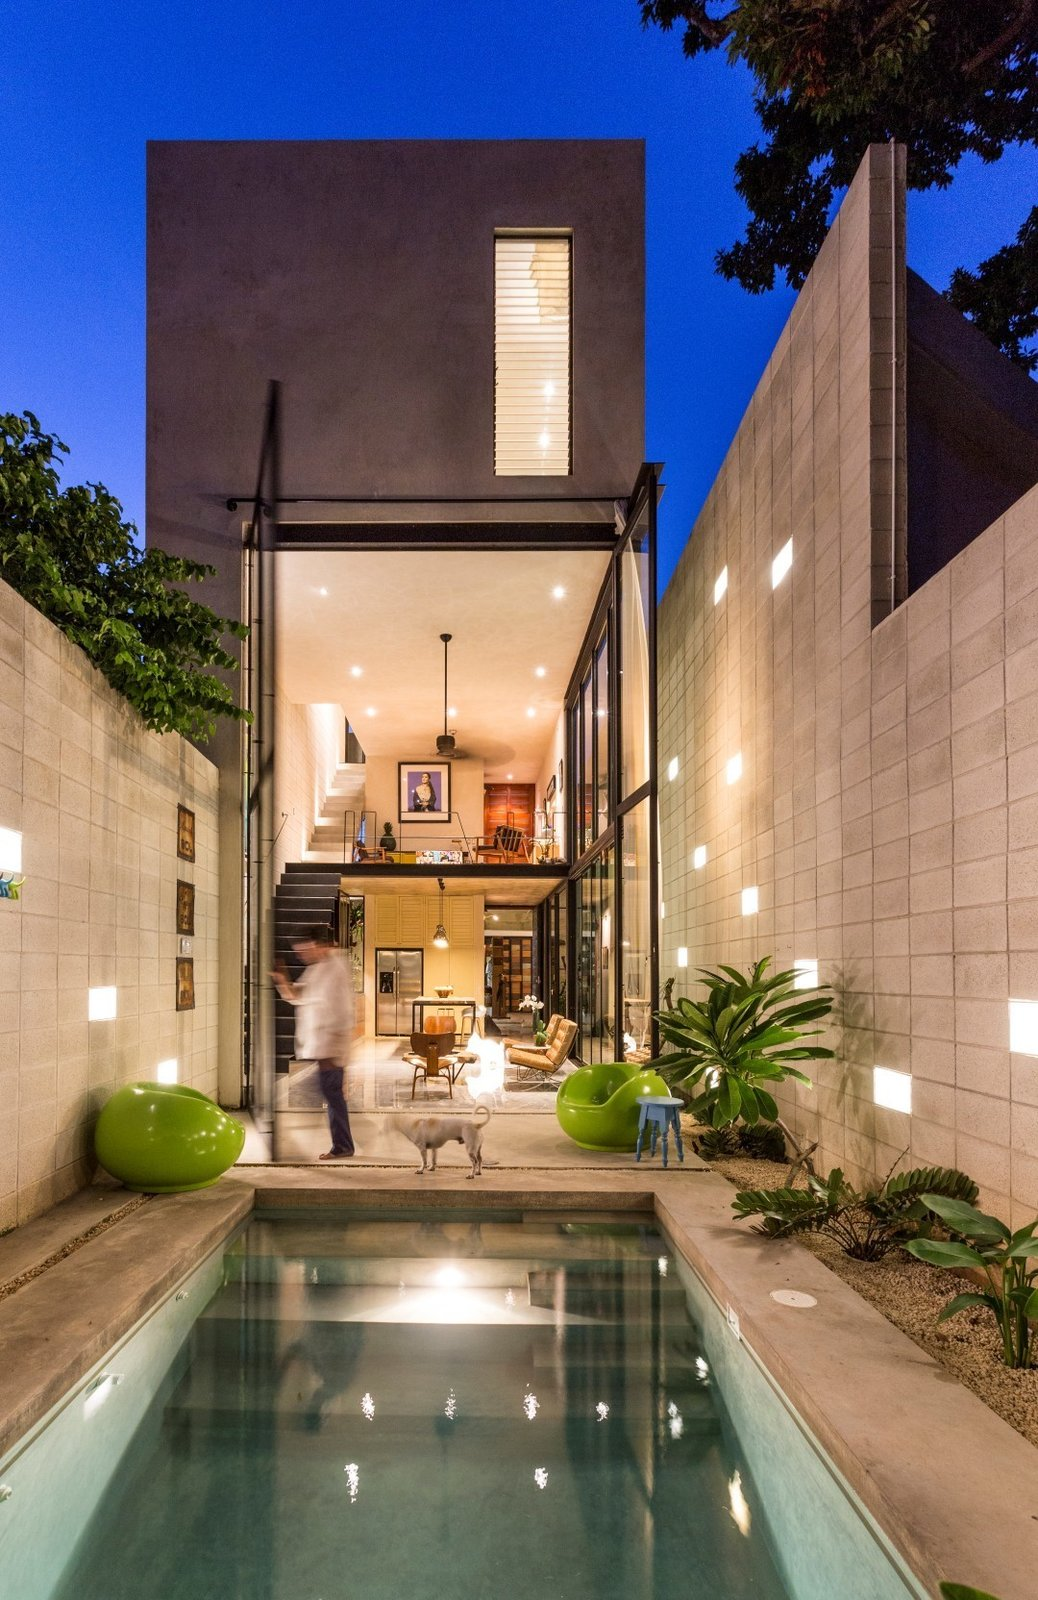 """The back of the home glows at night as the giant, two-story glass doors swing open to remove the barrier between inside and out. A polished concrete patio deck and pool, along with a simple block perimeter wall, make smart use of available materials. The pool acts as a passive conditioning tool, cooling air before it enters the house. The block wall is positioned 31 inches from the house, creating a gap or """"air chimney"""" that allows air to circulate up and away from the home, while simultaneously letting light filter down."""